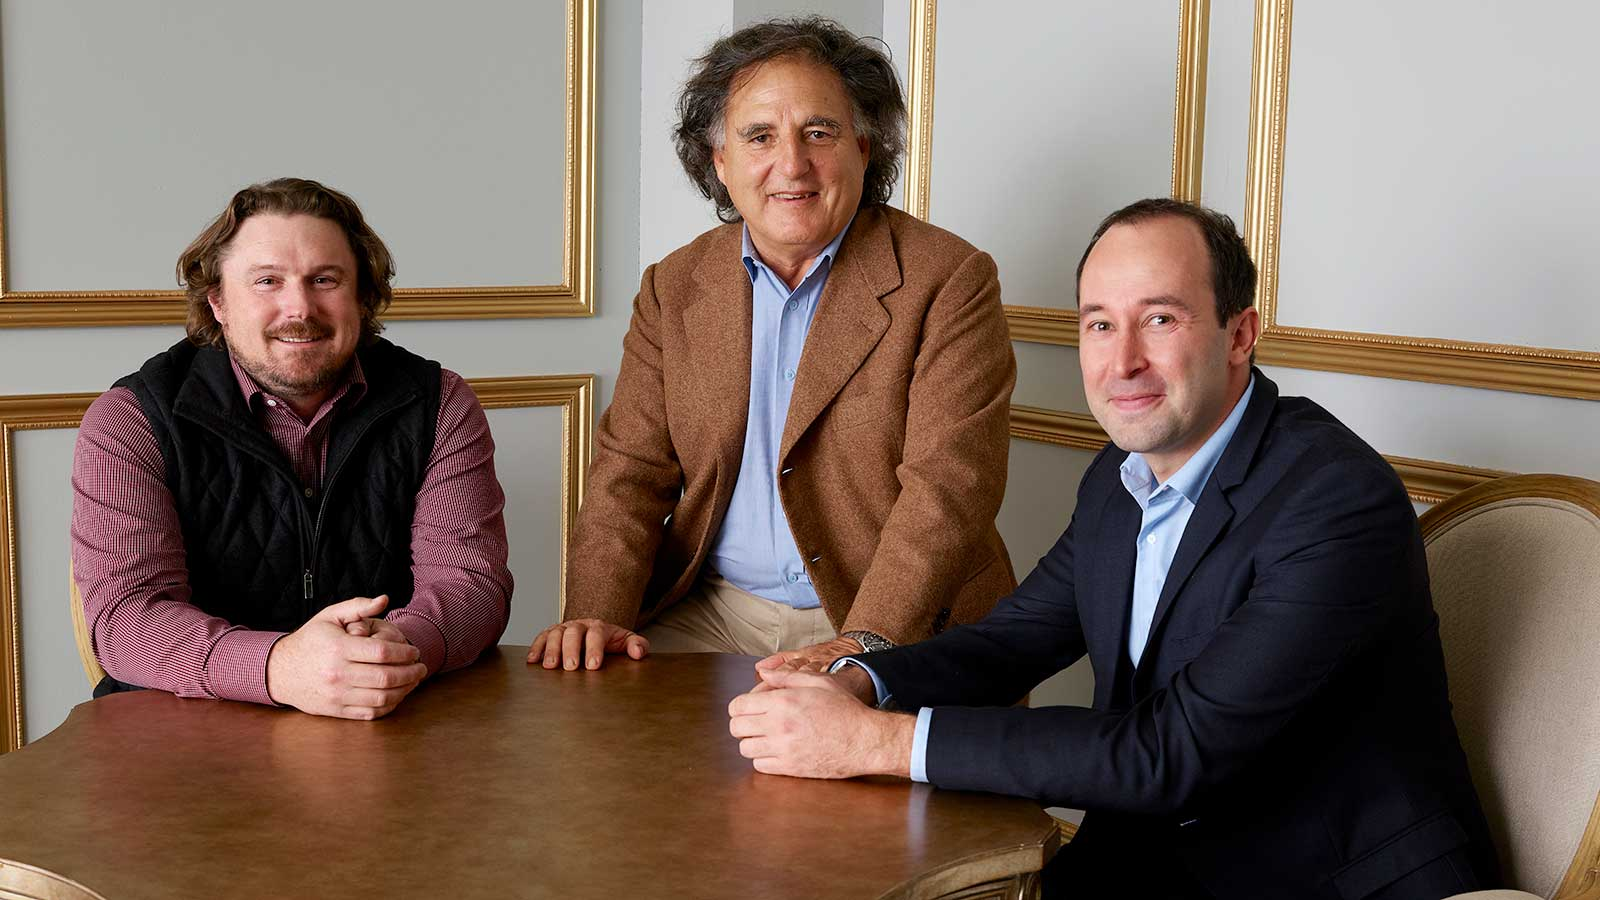 From left: Winemakers Morgan Twain-Peterson, Marco di Grazia and François Michel